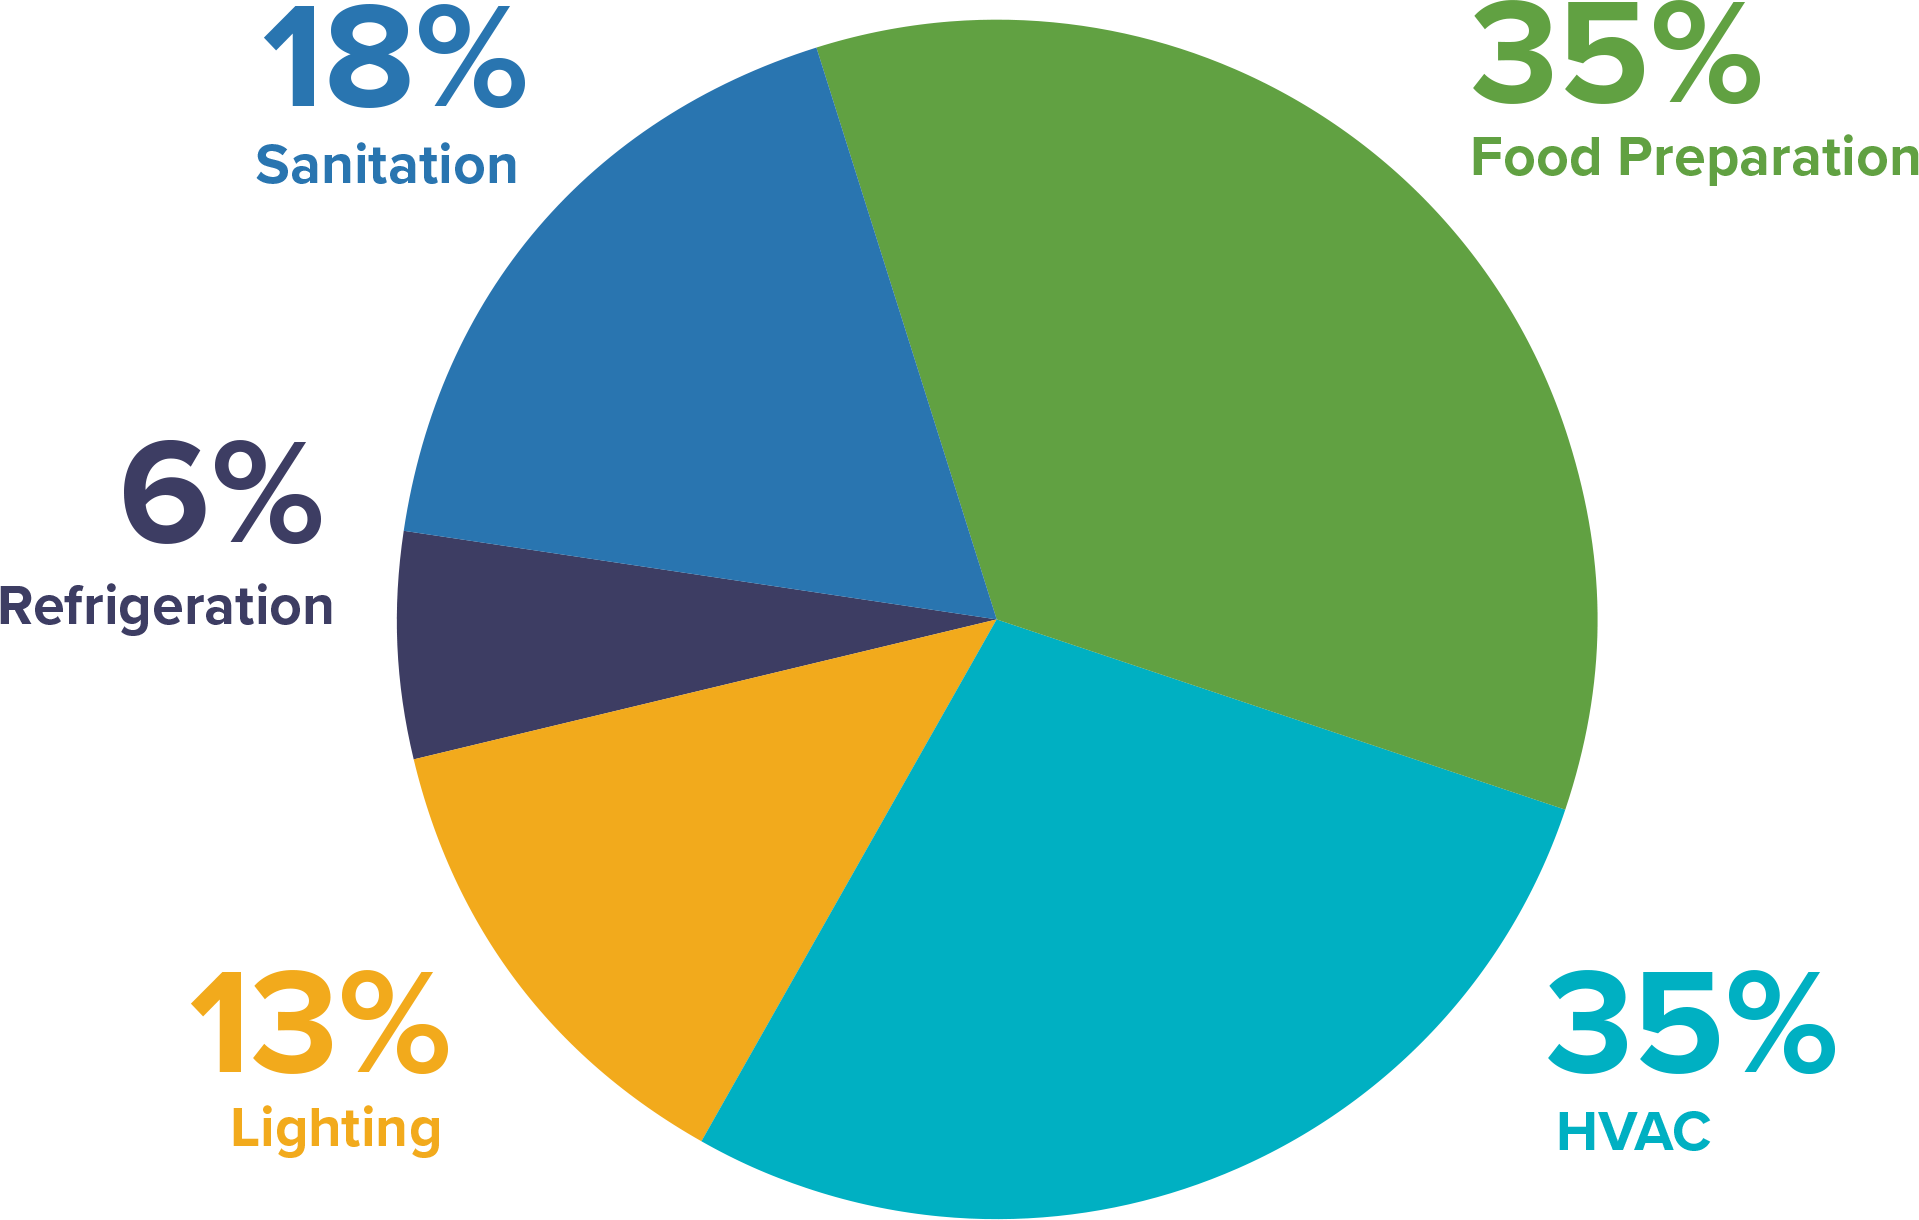 business energy usage categories